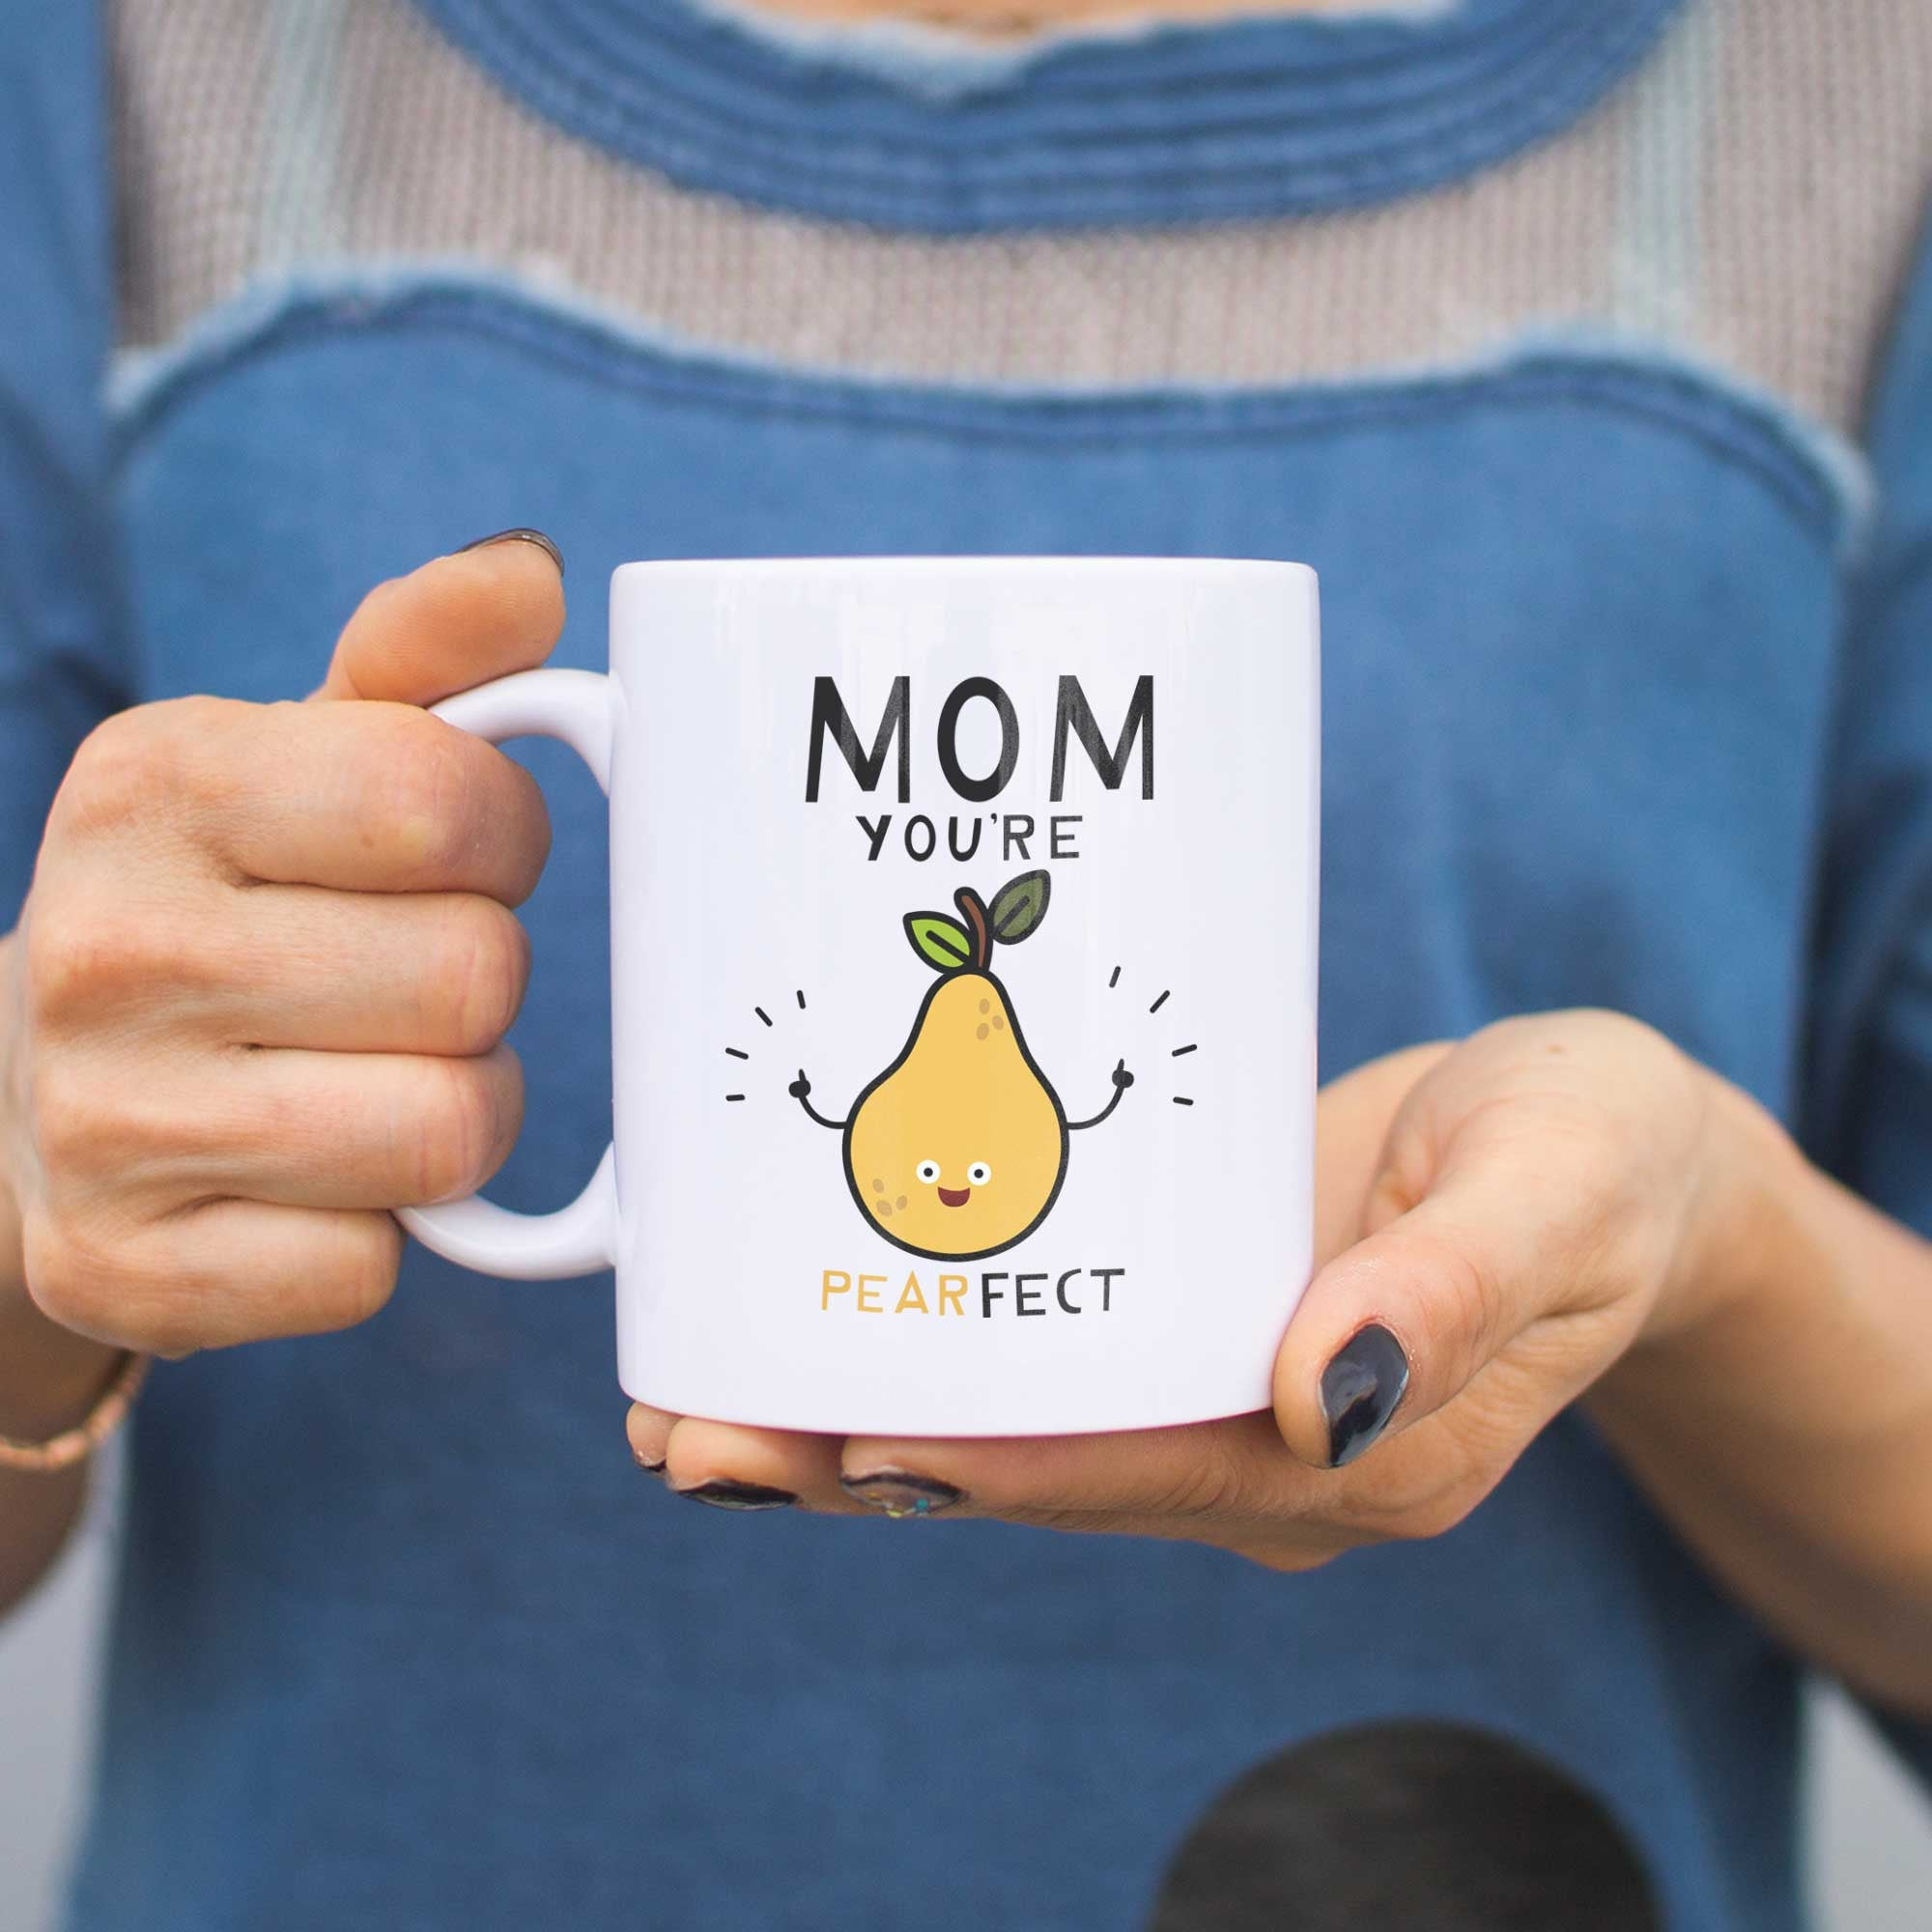 mom youre pearfect cute mug cup gift for mom on mothers day or christmas